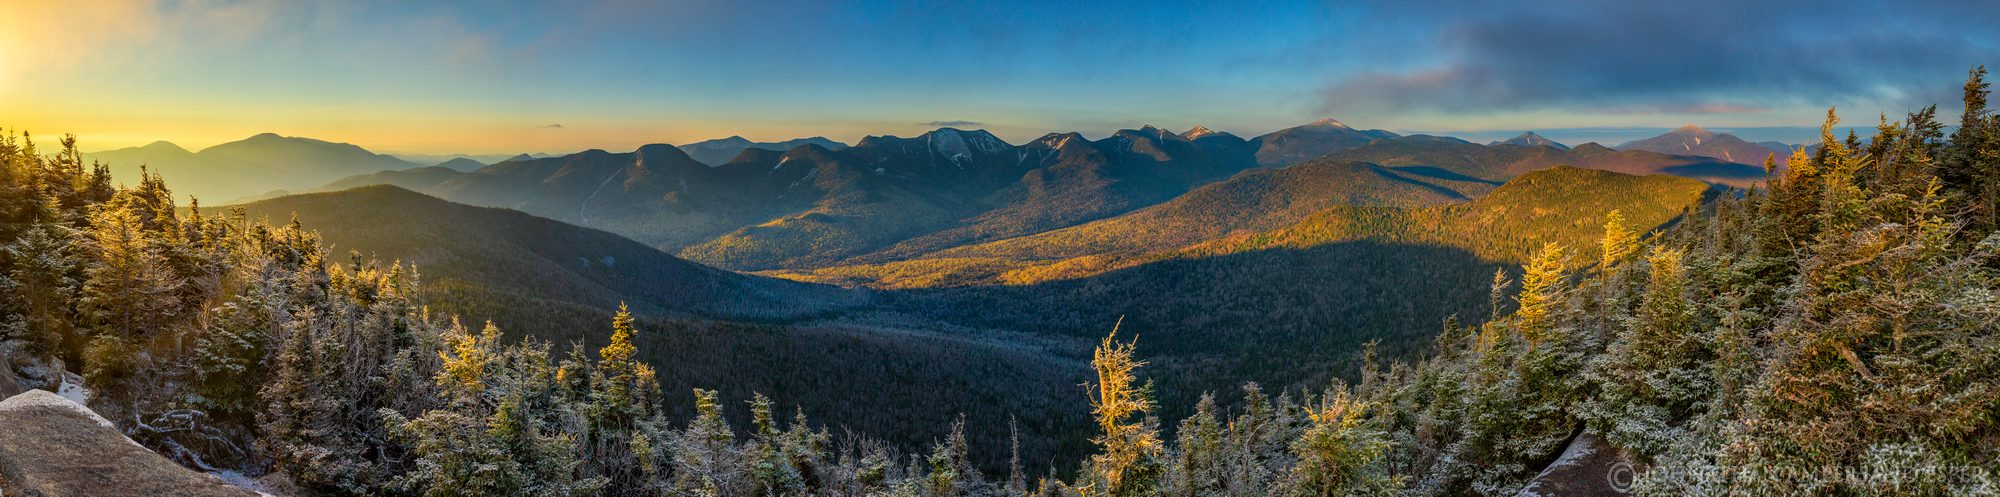 Big Slide Mt summit frosty spring morning light on High Peaks range 200 degree panorama, including left to right, Giant, Lower...